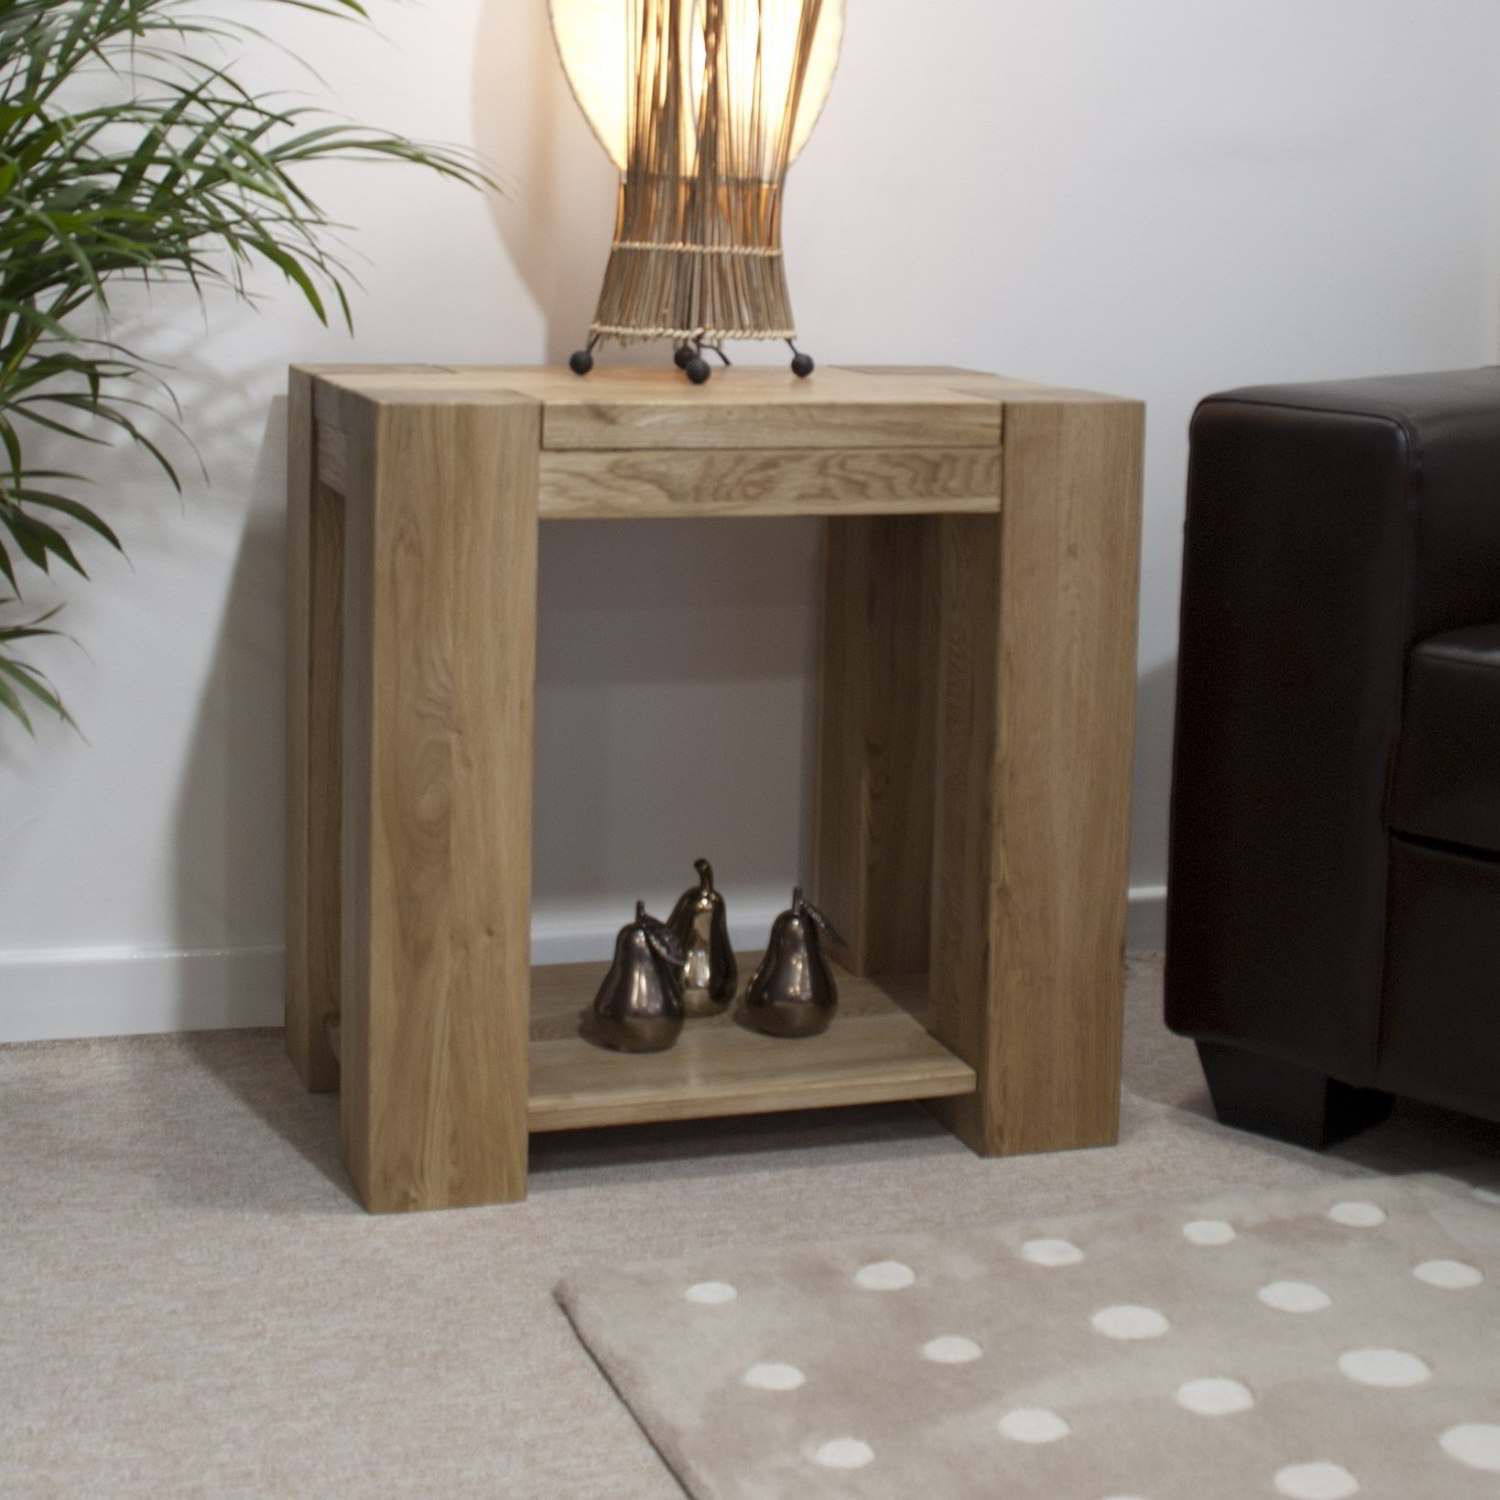 Pemberton Solid Chunky Oak Living Room Furniture Lamp Sofa Side Table EBay